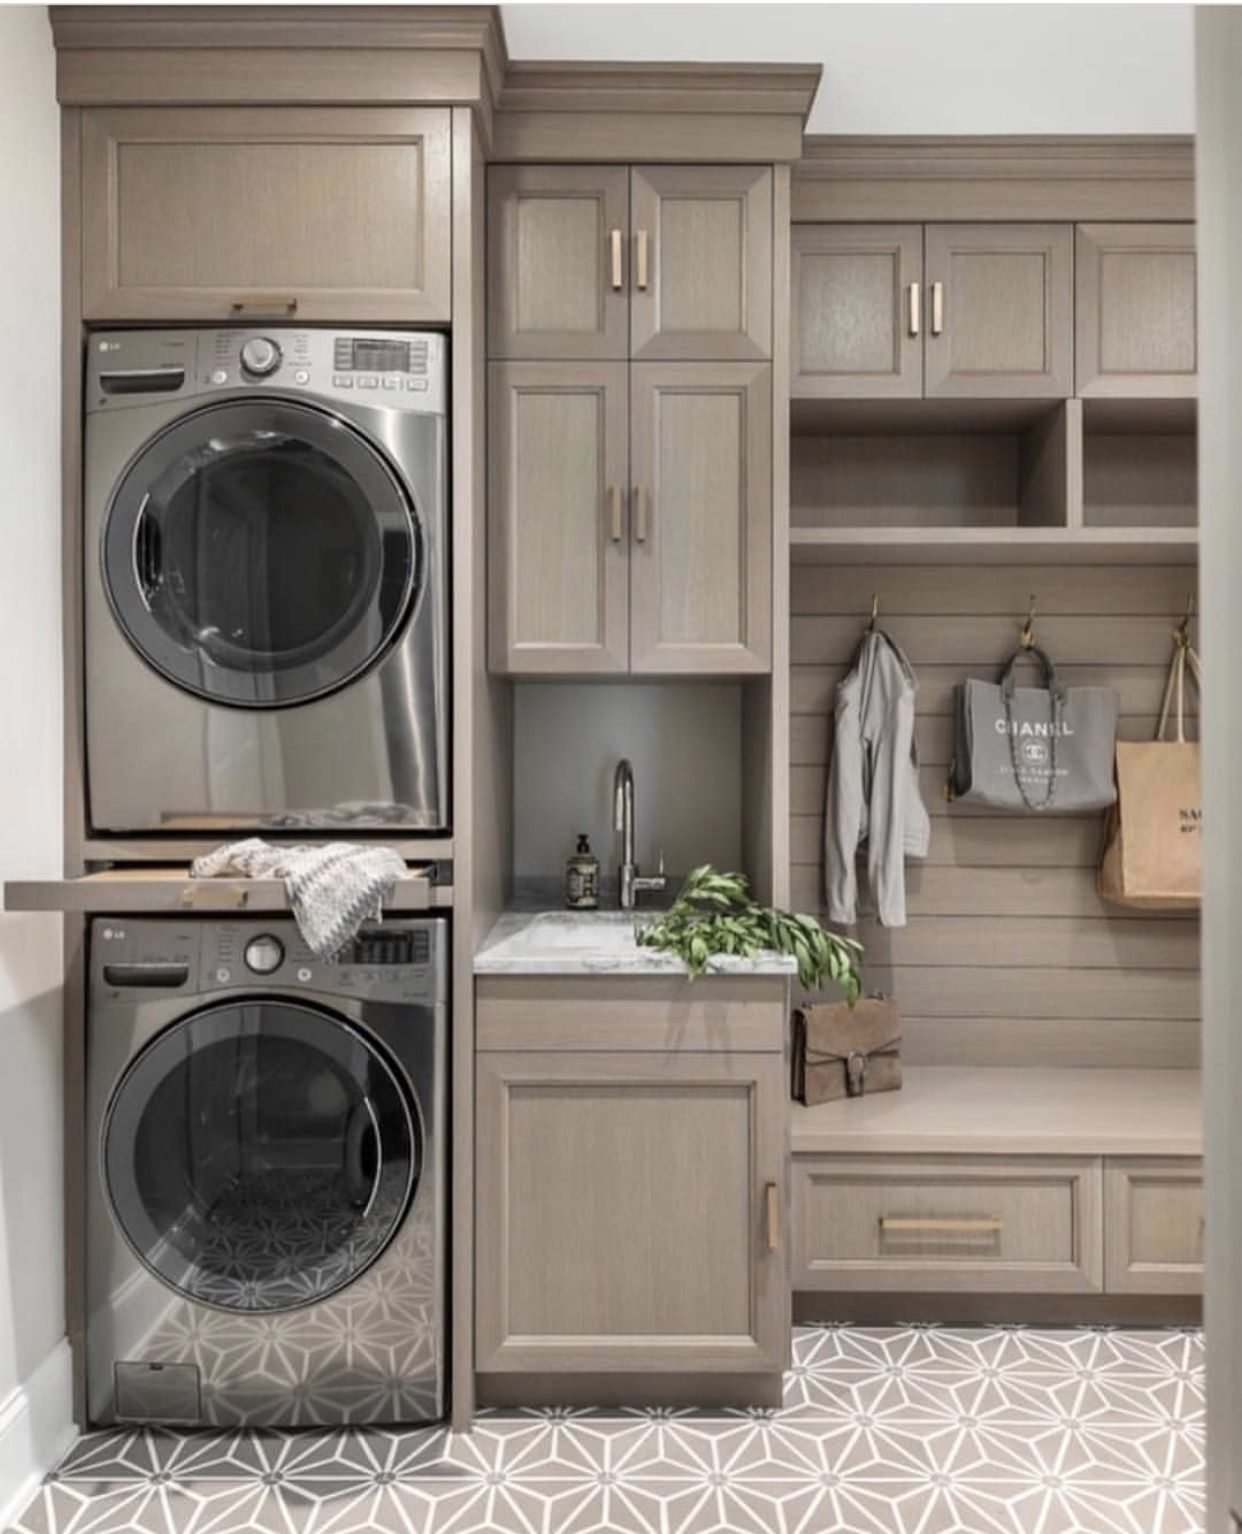 Pin By Alda Silveira On Laundry Rooms Laundry Room Layouts